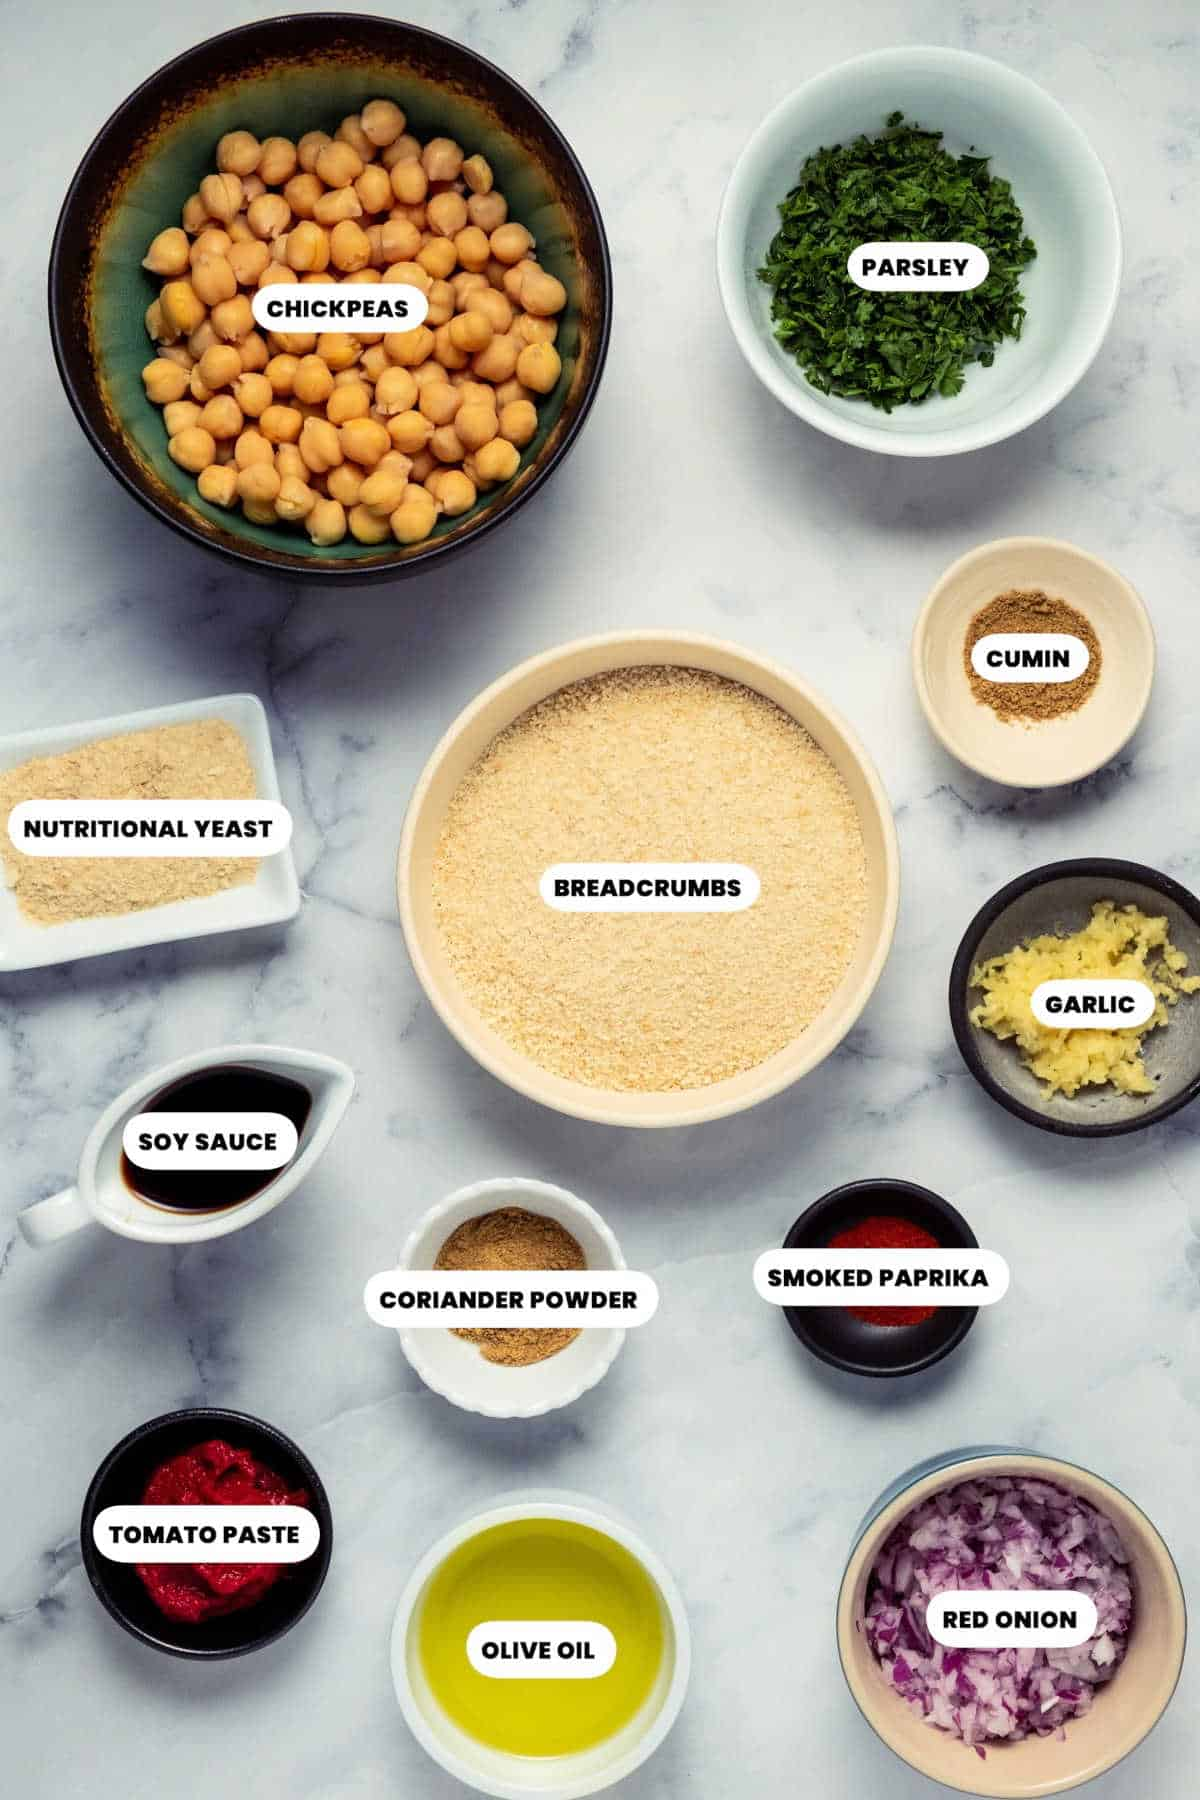 Photo of the ingredients needed to make chickpea meatballs.